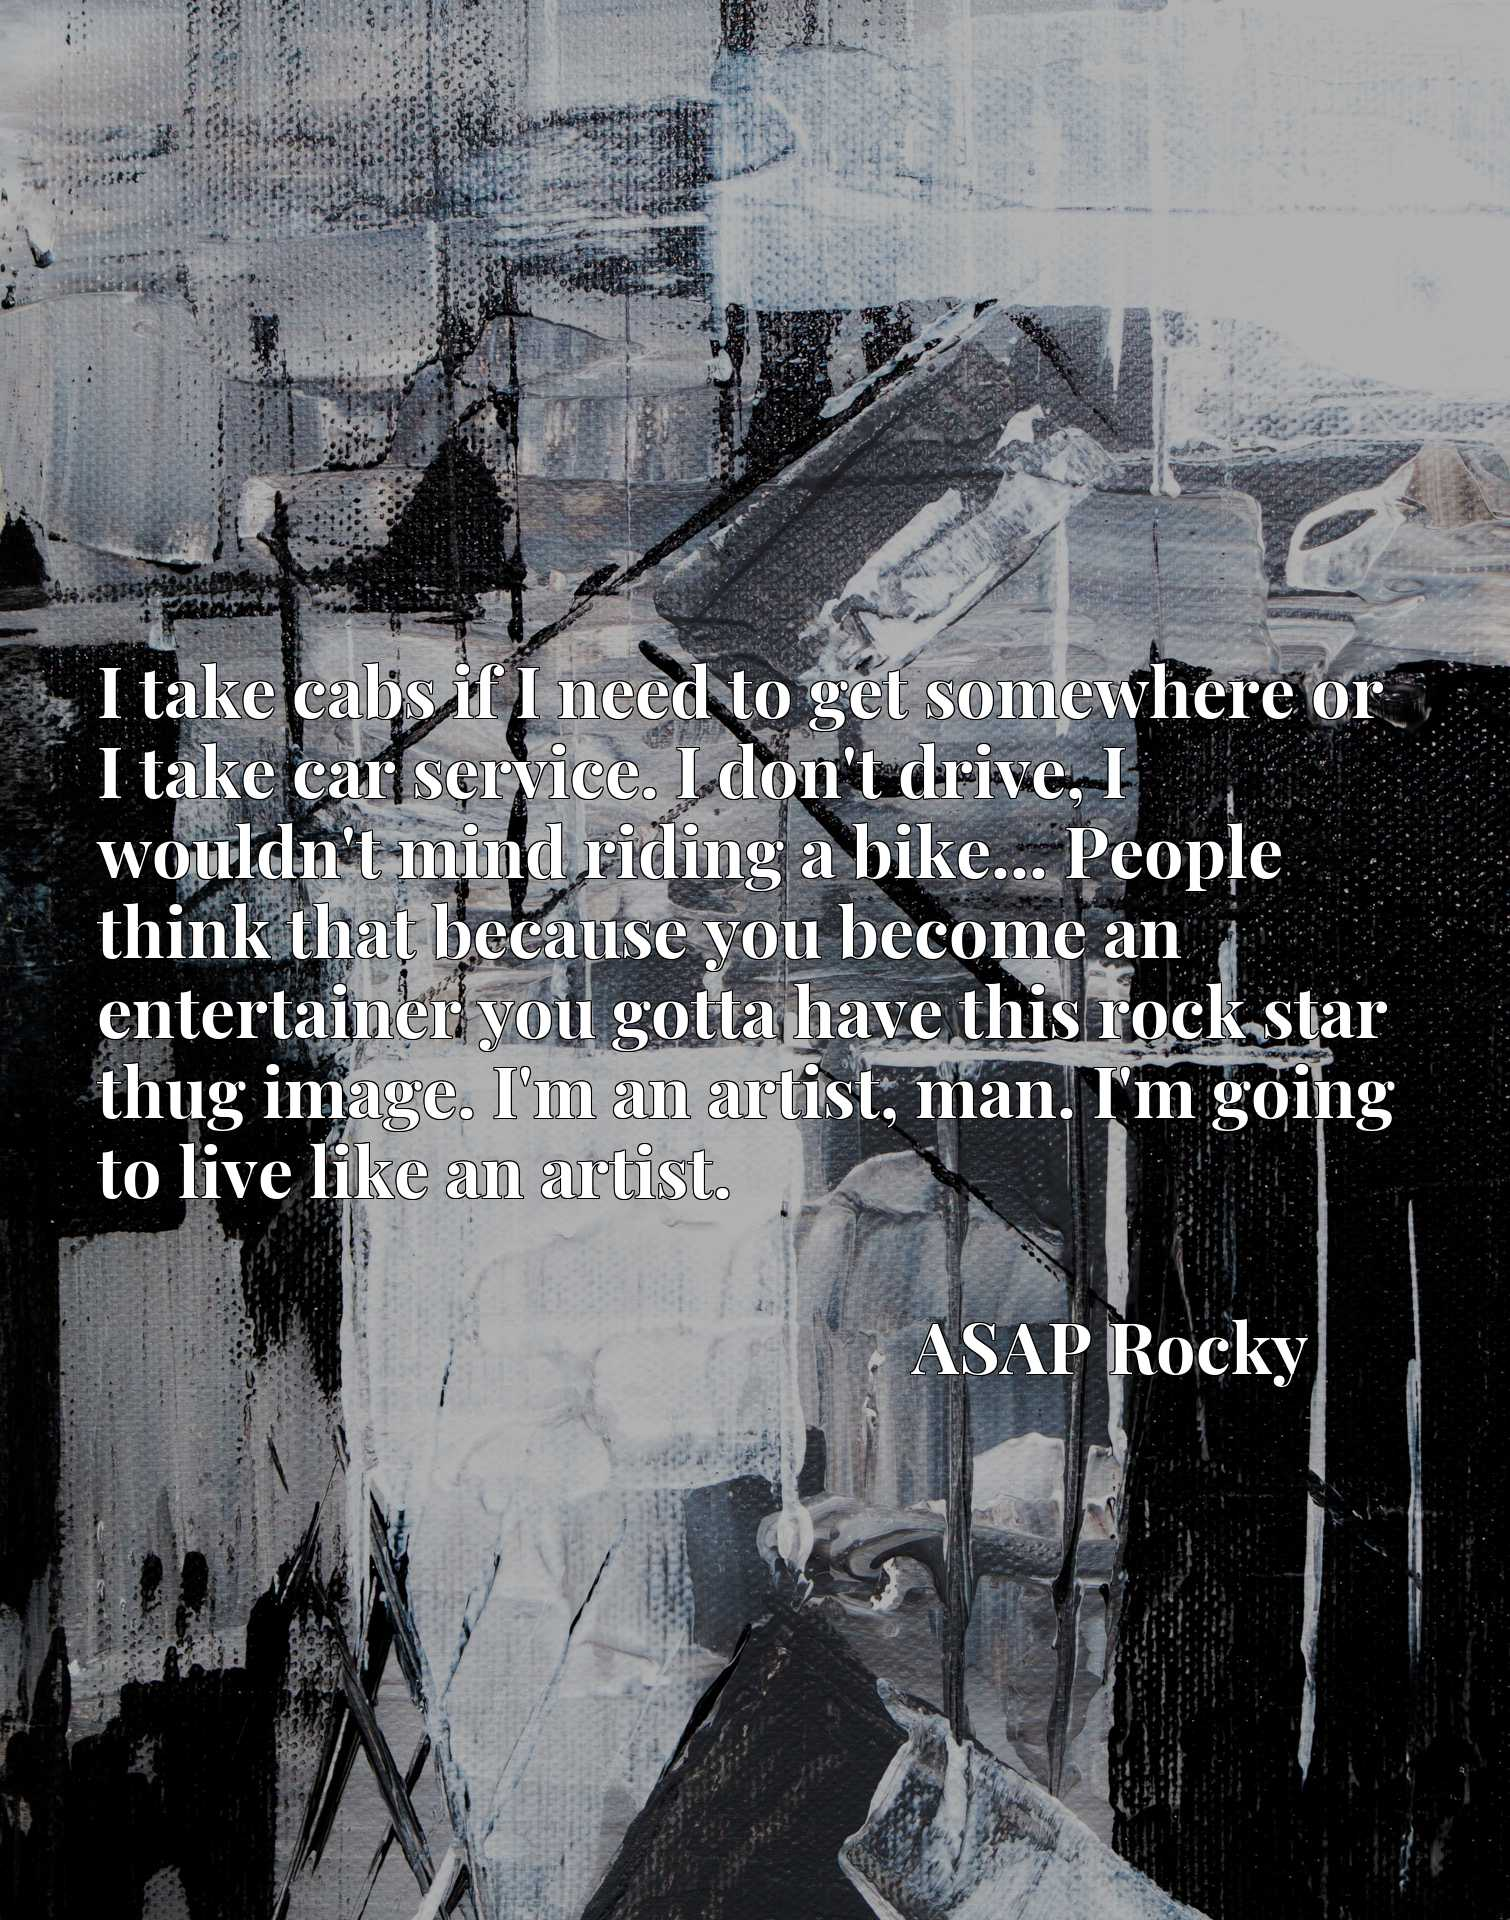 I take cabs if I need to get somewhere or I take car service. I don't drive, I wouldn't mind riding a bike... People think that because you become an entertainer you gotta have this rock star thug image. I'm an artist, man. I'm going to live like an artist.